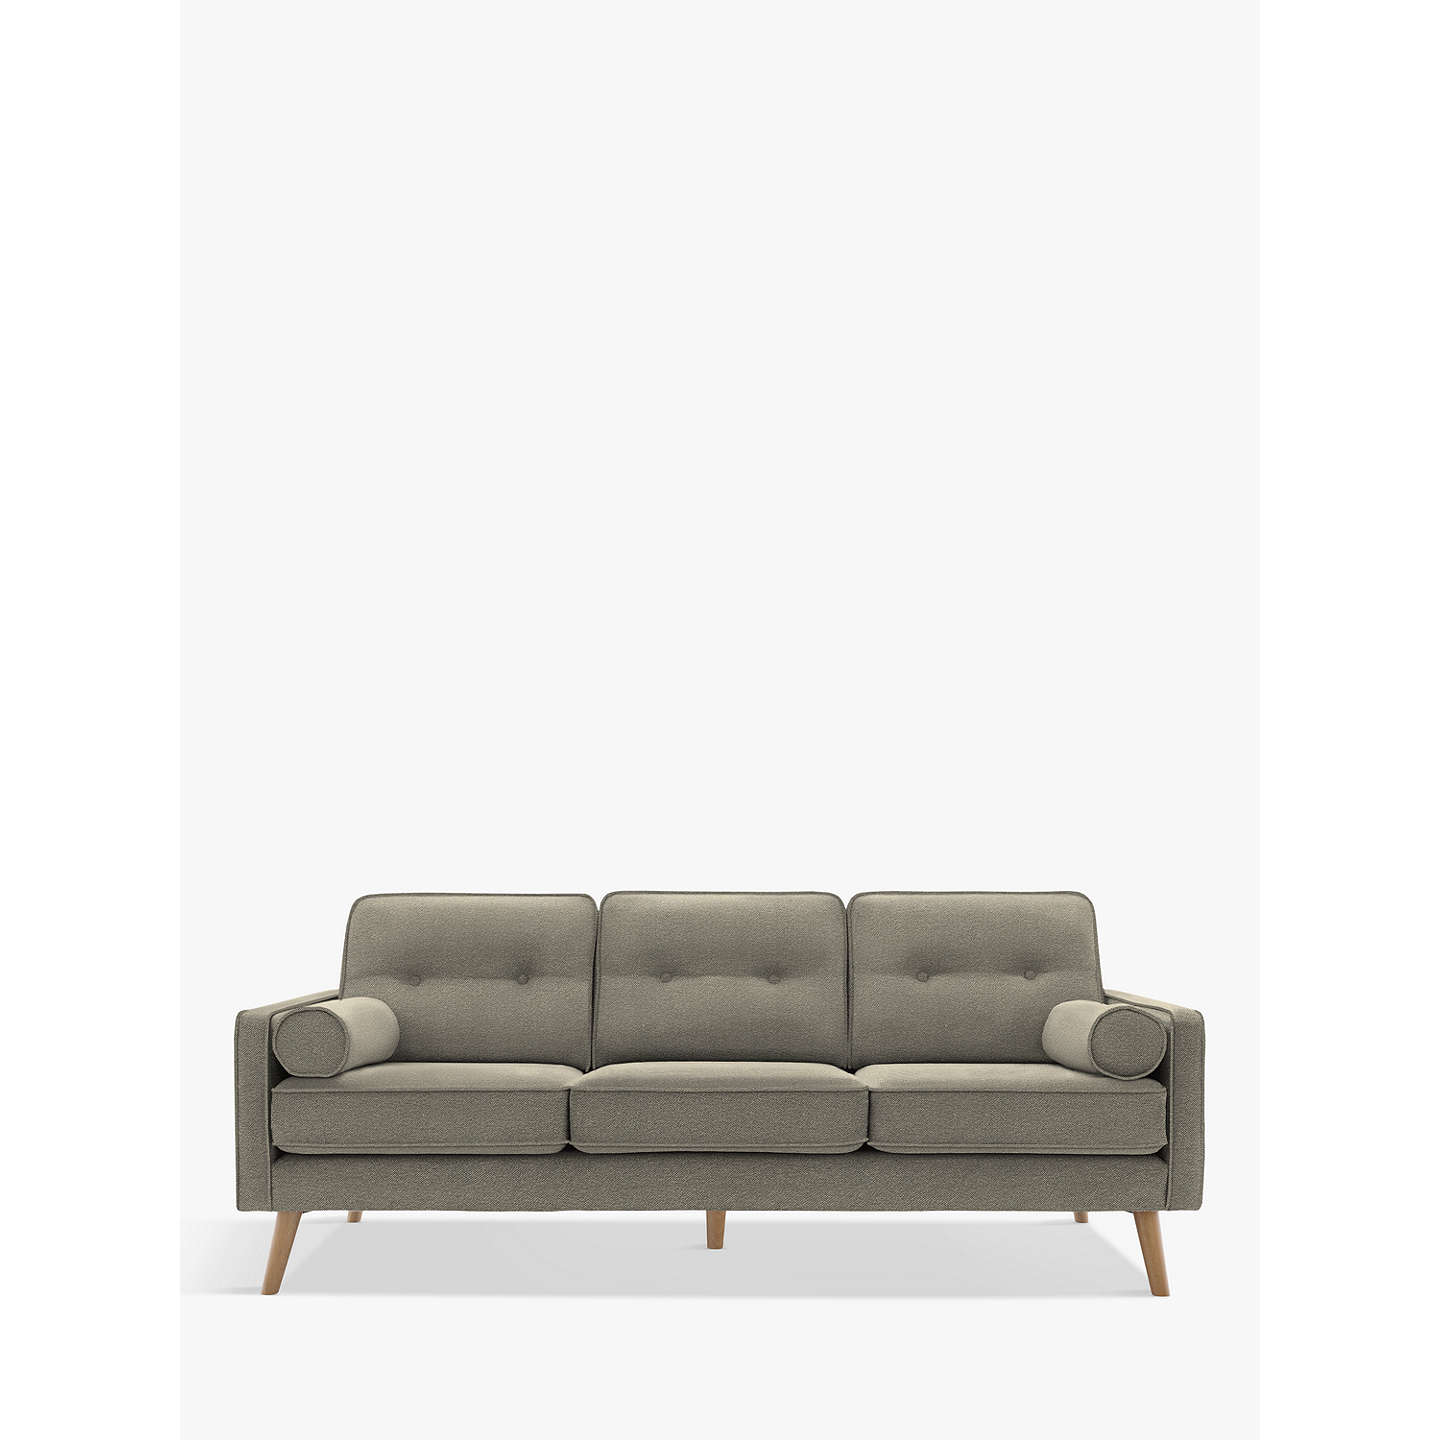 BuyG Plan Vintage The Sixty Five Large 3 Seater Sofa, Bobble Ash Online at johnlewis.com